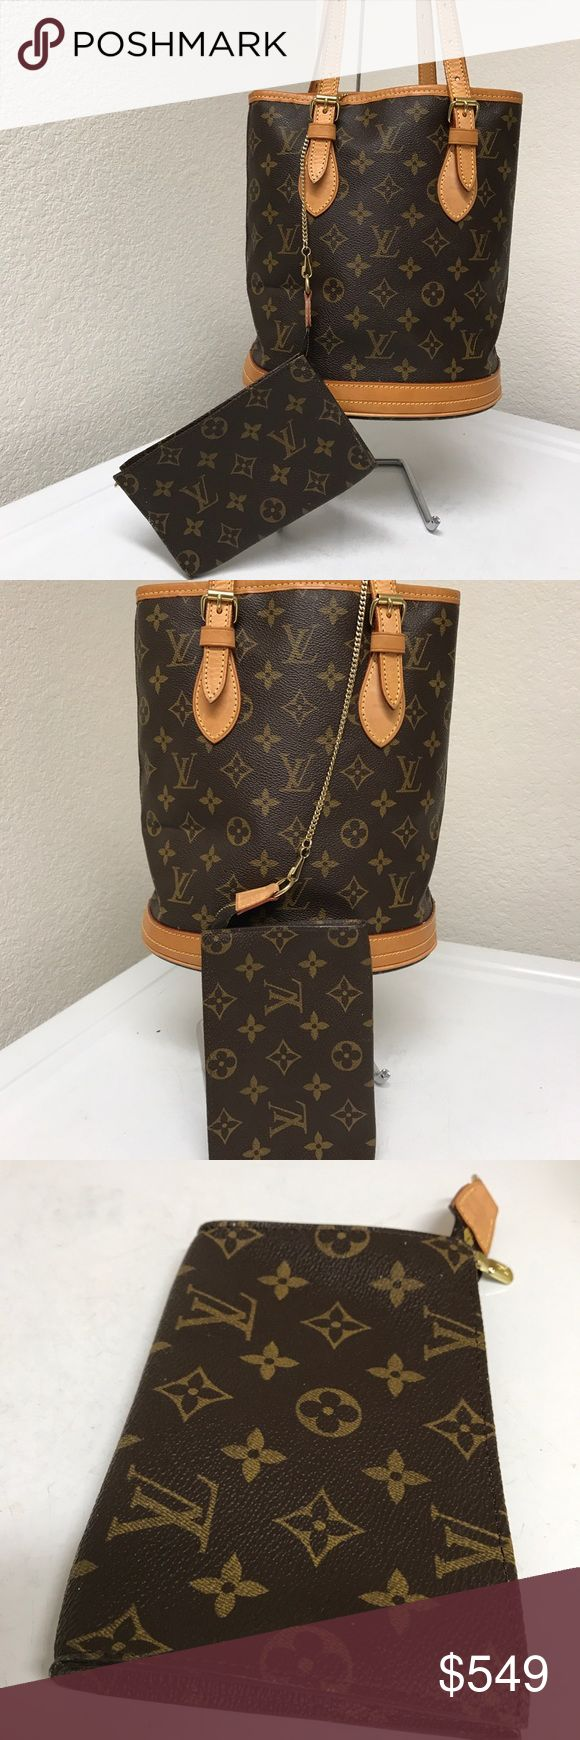 Louis Vuitton bucket bag w:Wallet Beautiful vintage authentic bag and wallet w/gentle used,no hole nor tear noted,bottom of bag has patina and inside has minor scuffs/sticky feel but overall Bag and Wallet is excellent ! Louis Vuitton Bags Totes